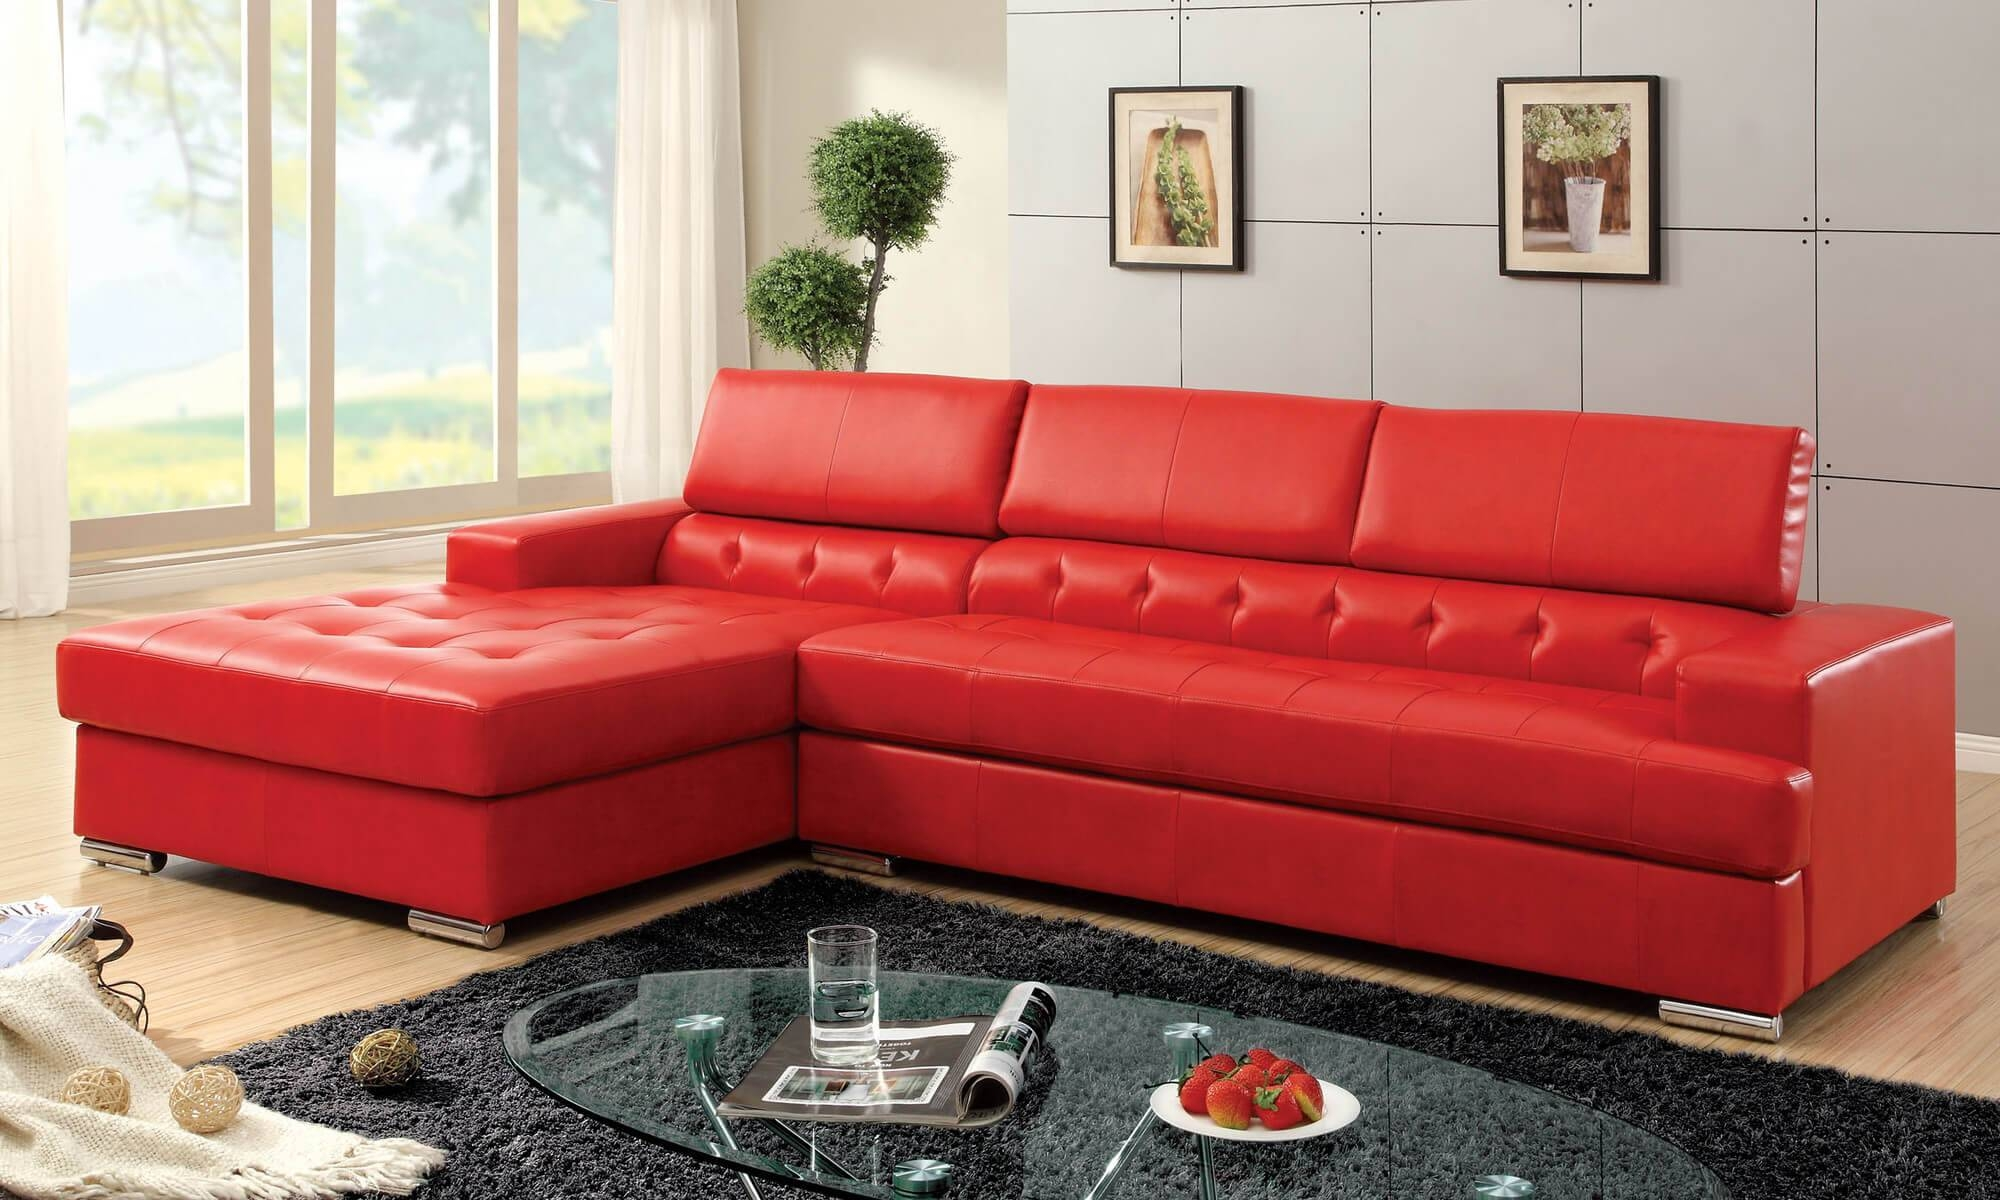 Sofa: Comfort And Style Is Evident In This Dynamic With Tufted within Leather Sofa Sectionals for Sale (Image 19 of 30)